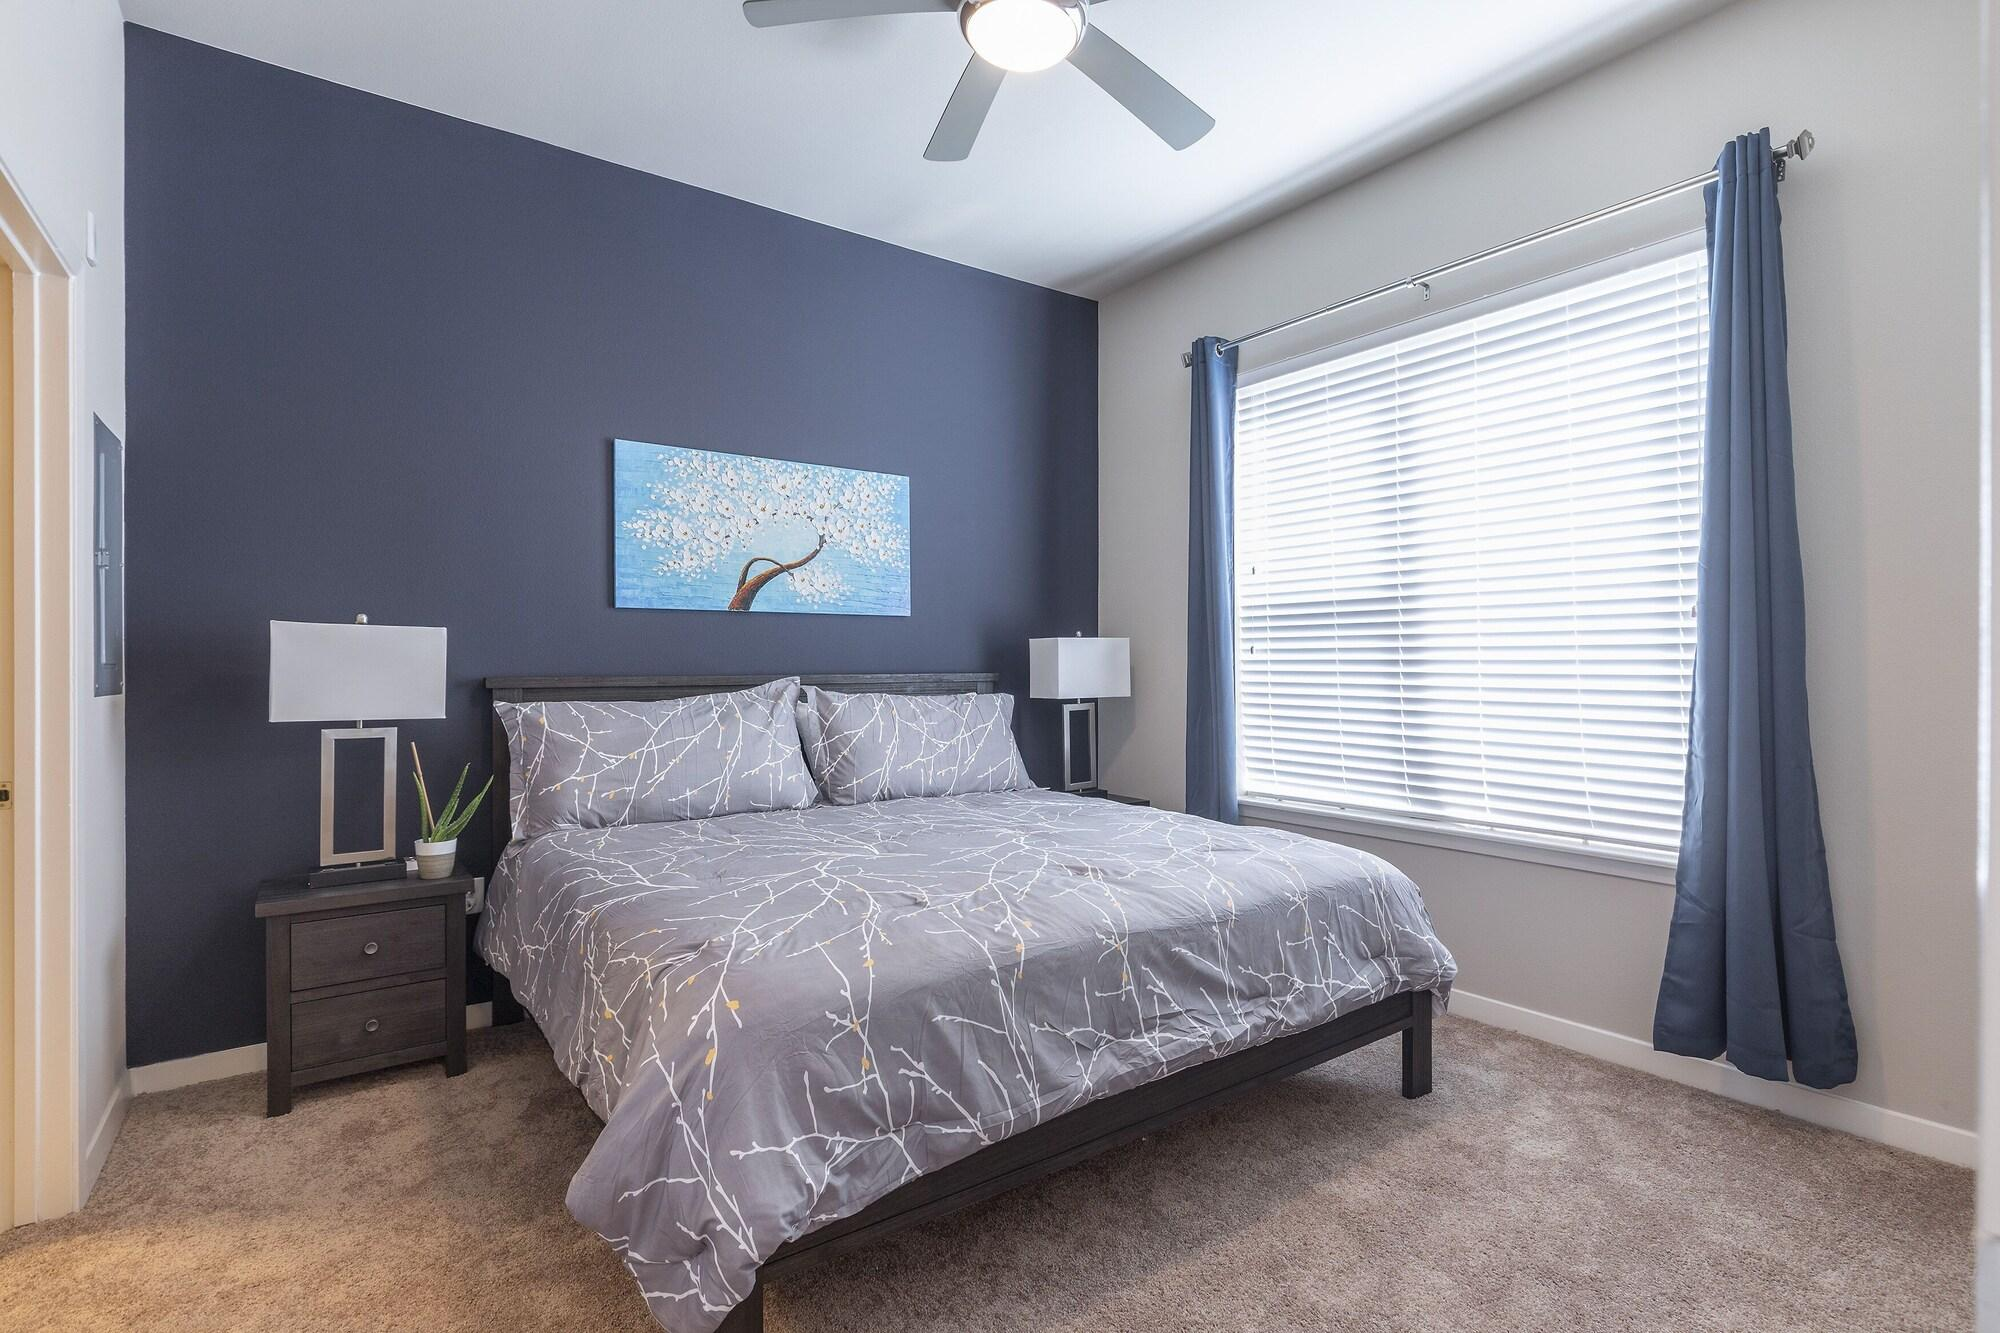 Luxurious King BED MED Center Fully Equipped Condo